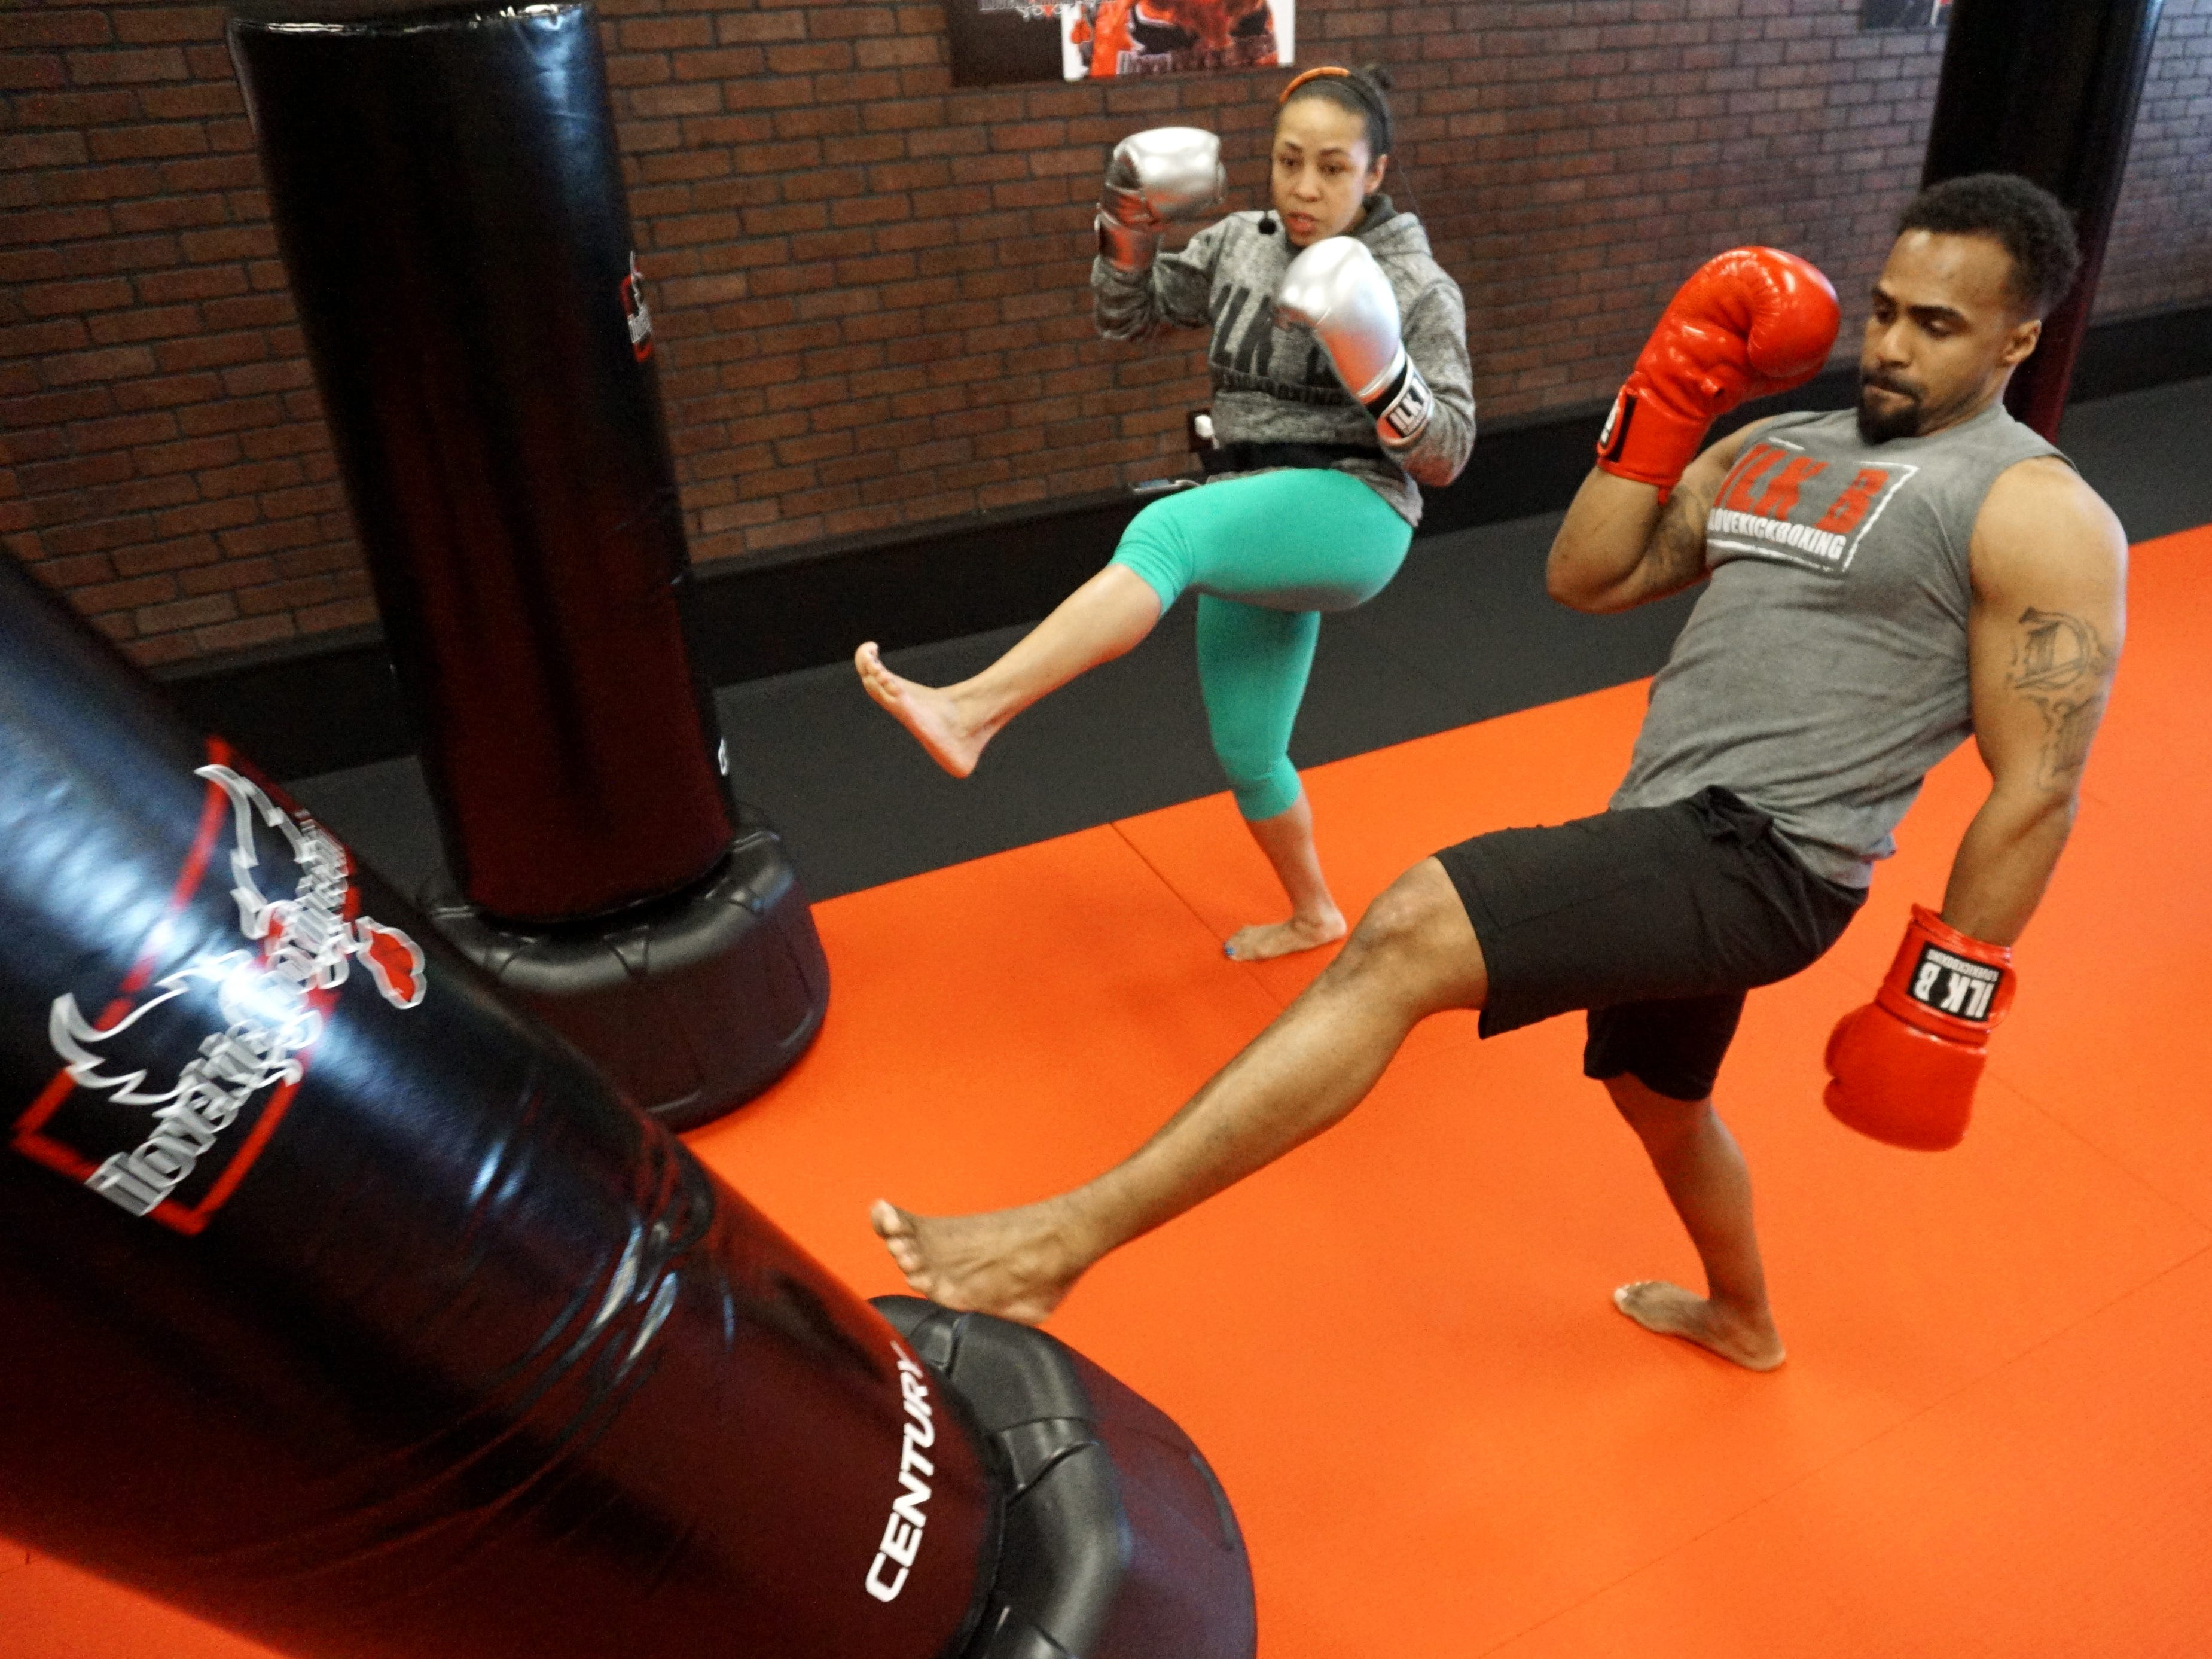 Students of I Love Kickboxing get to do lots of boxing and... kicking as Antonio Green demonstrates here.